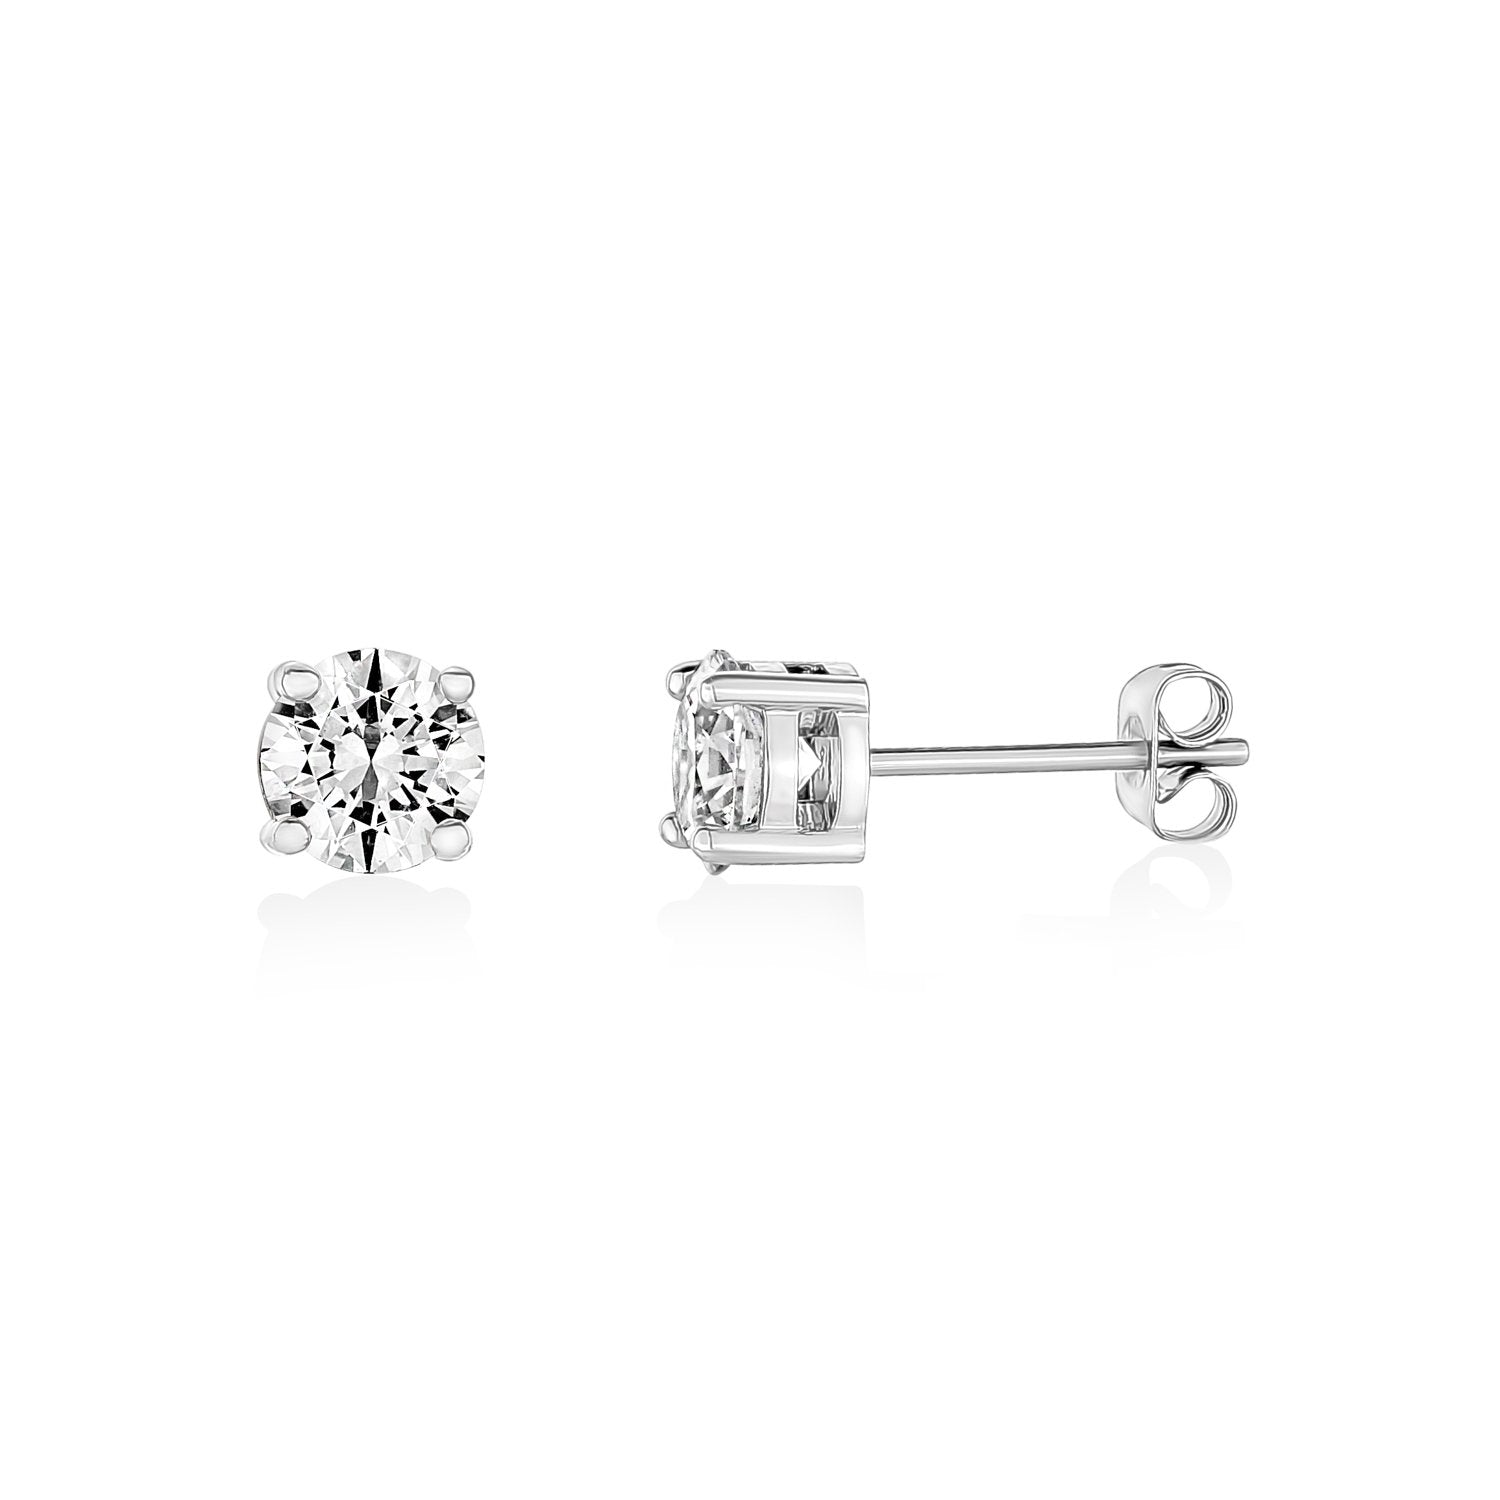 Earrings - 6.5mm Stainless Steel Cubic Zircon Stud Earrings